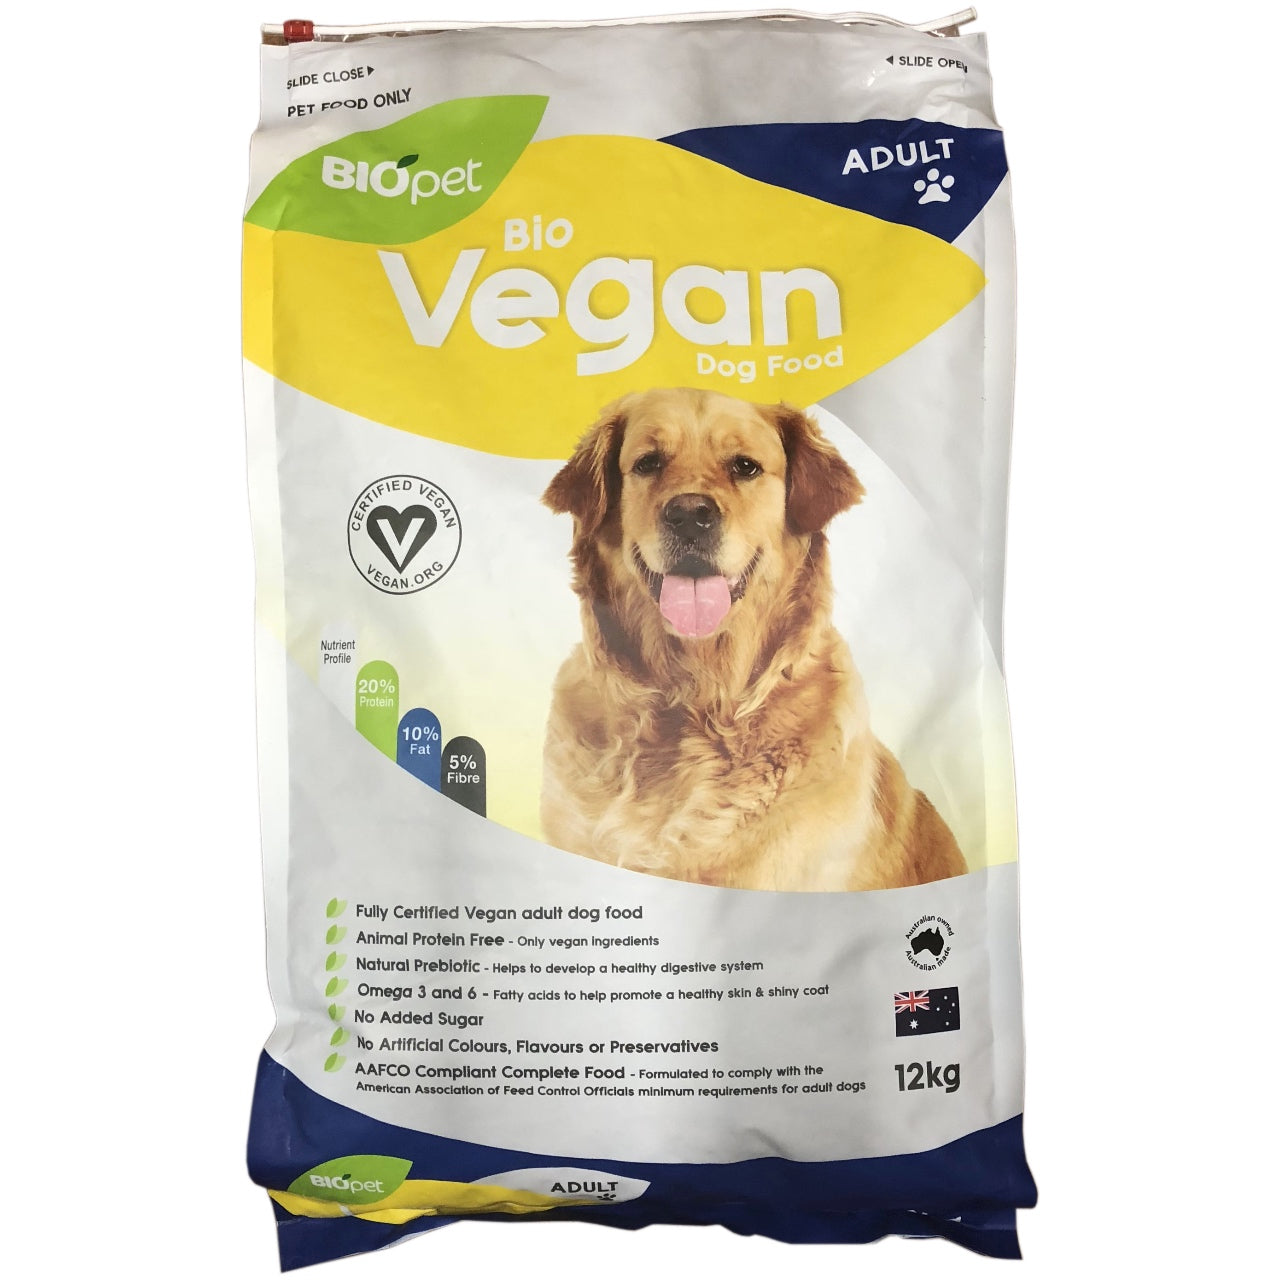 Biopet Vegan Dog Food -12kg